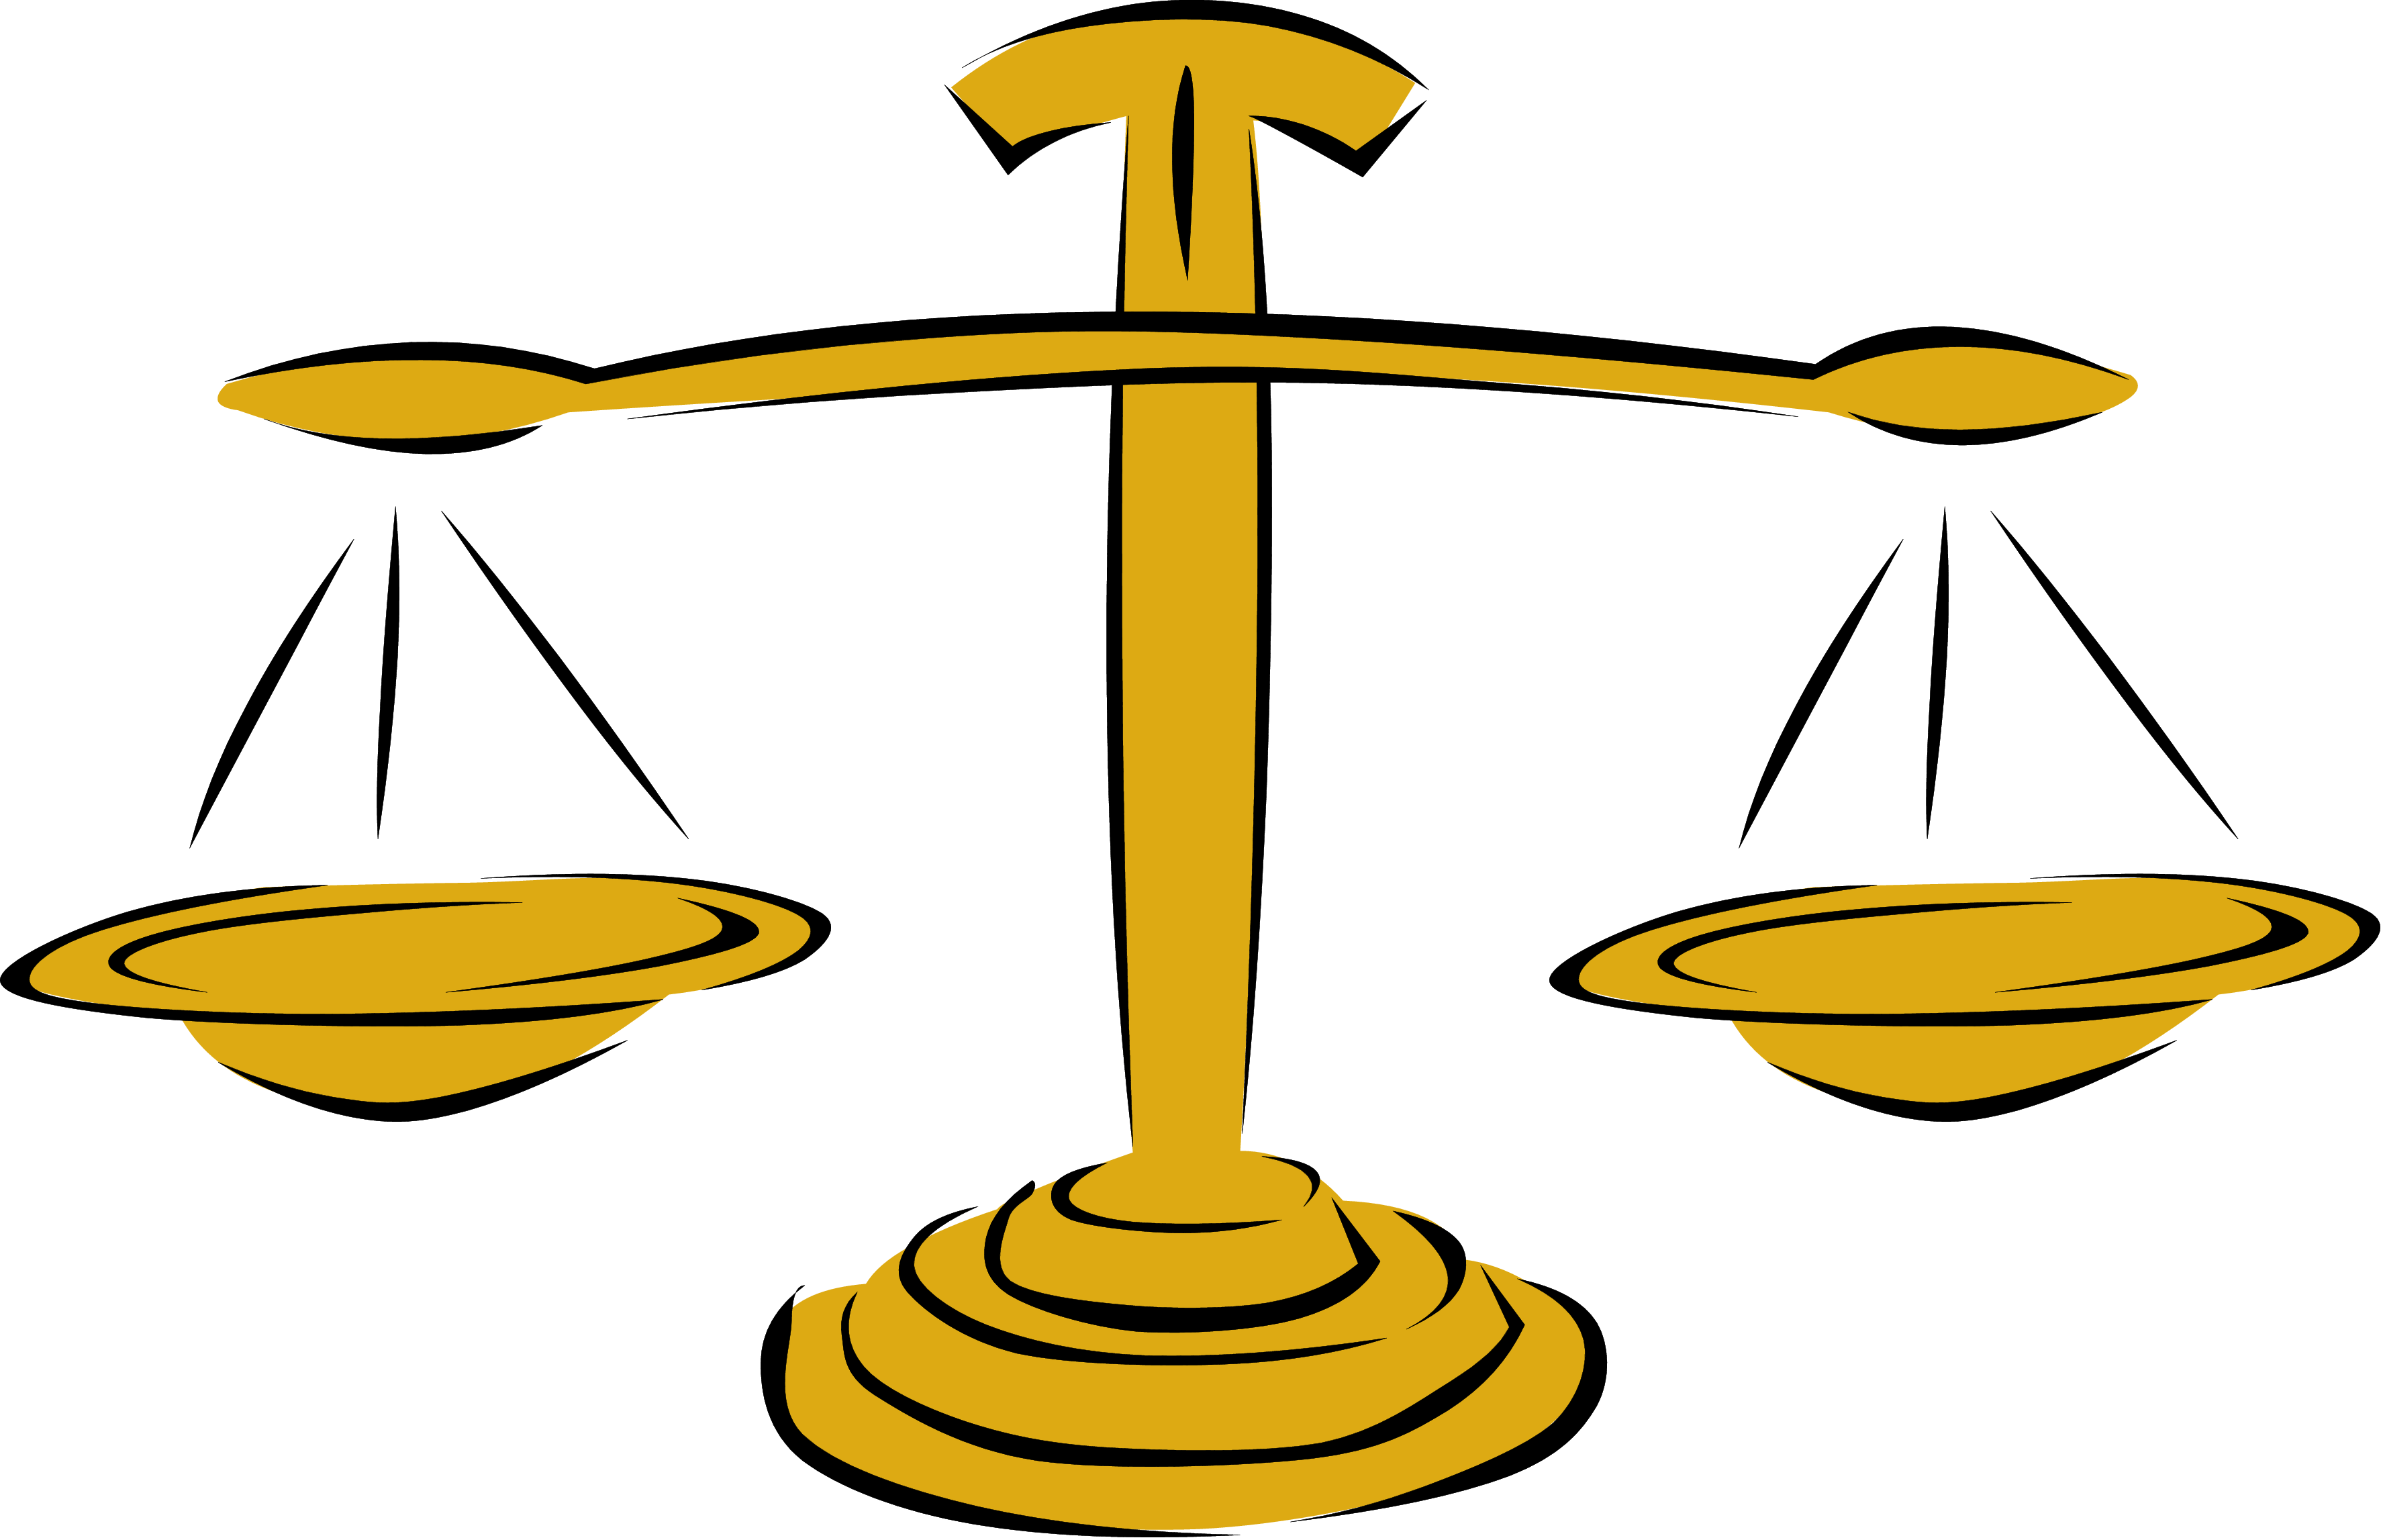 Weight clipart injustice. Generally is there justice